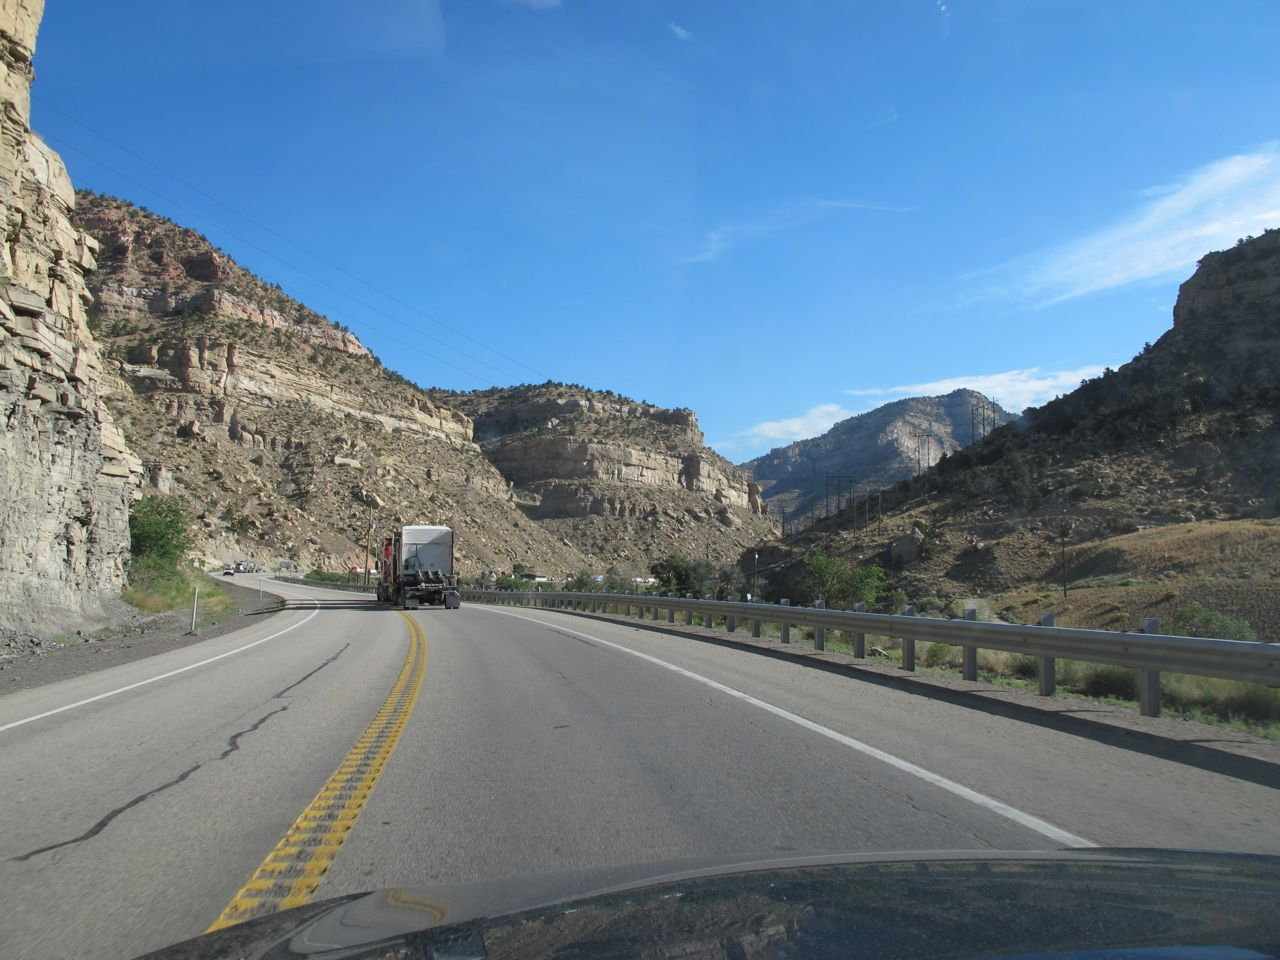 Price River Canyon, above Price, Utah, along US 6.